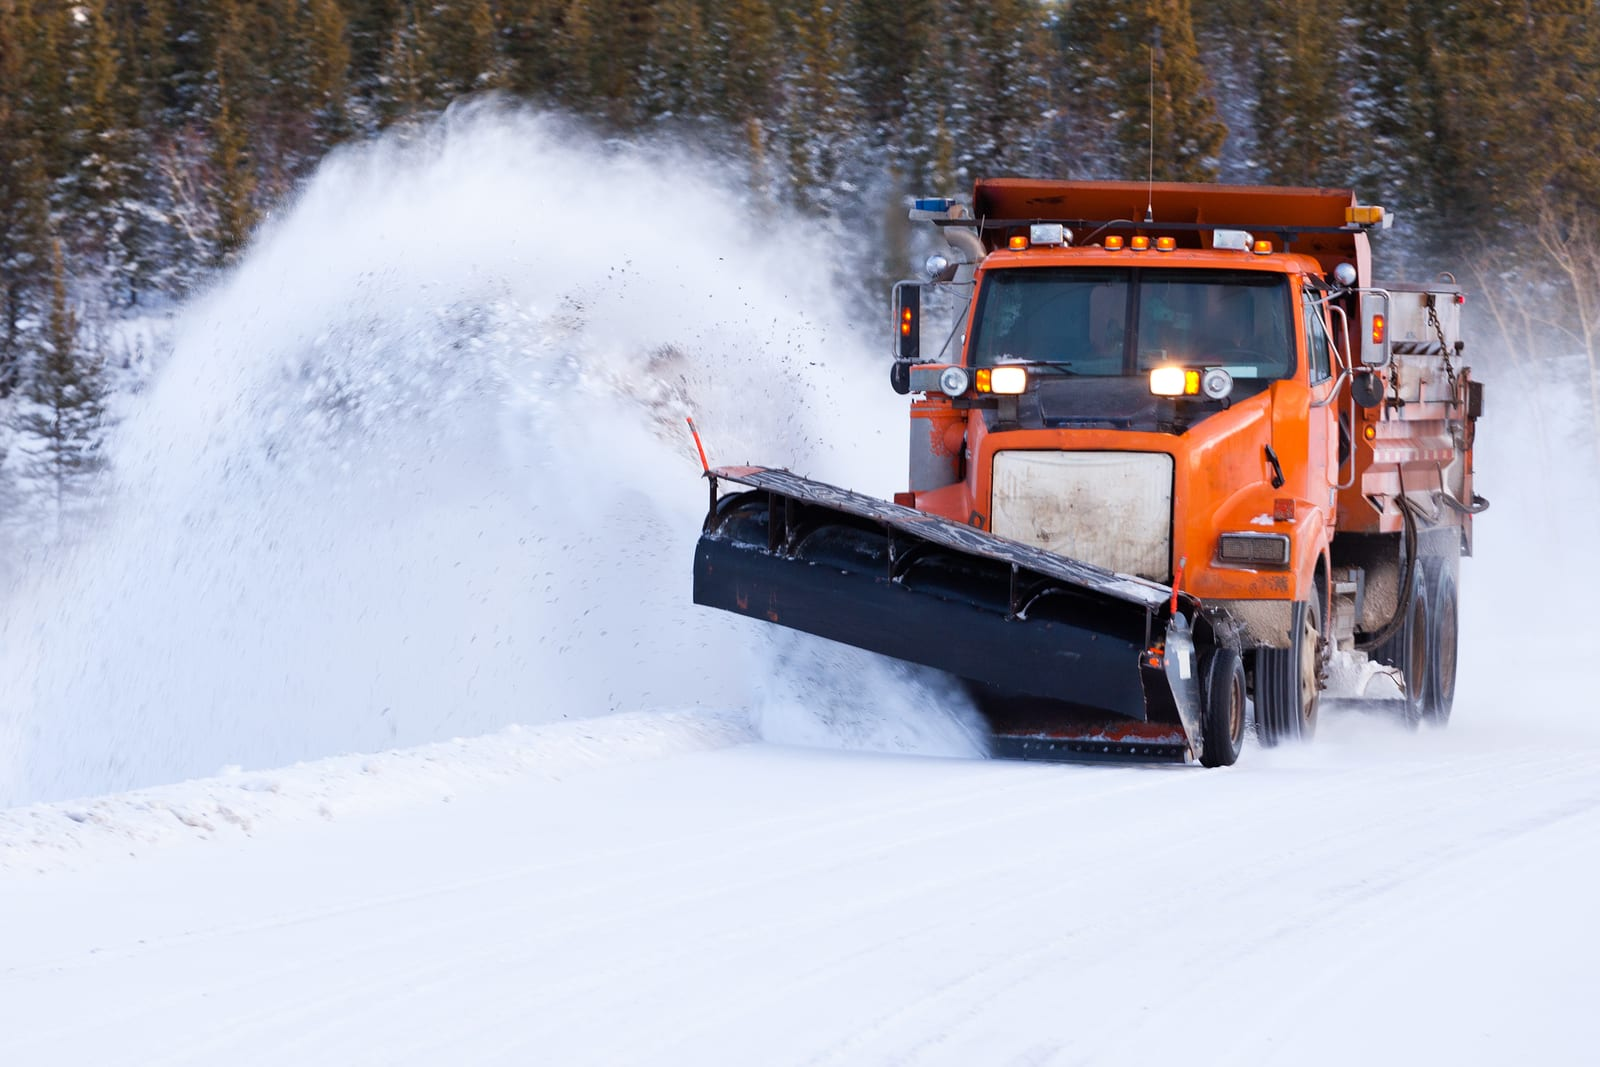 City of Columbia MO plow crew scheduled to report at 7 p.m., Jan. 24, to continue treating, plowing all City streets